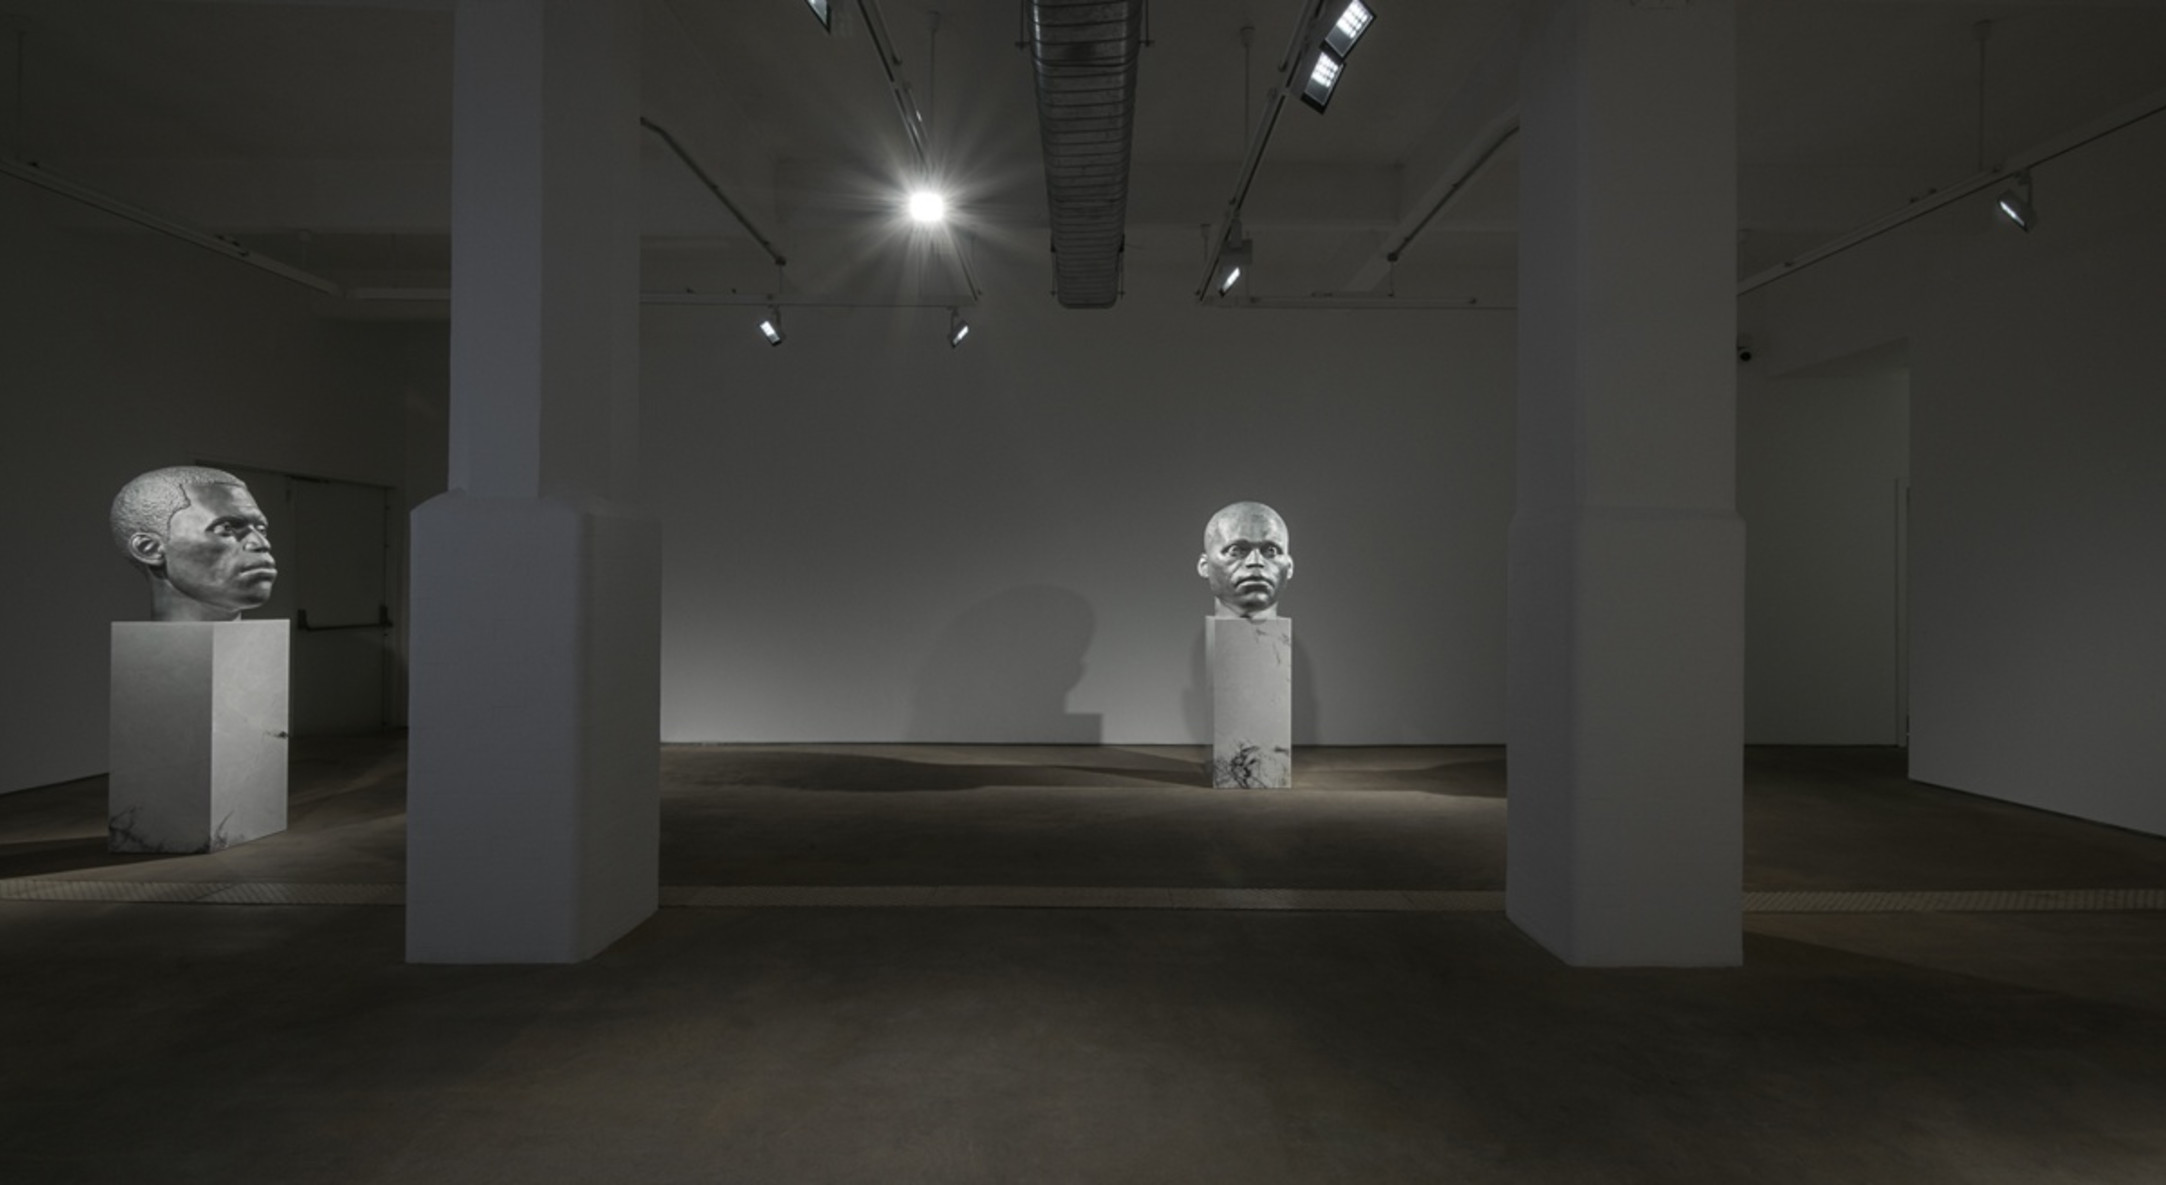 Installation view of Thomas J Price, Worship at Hales London